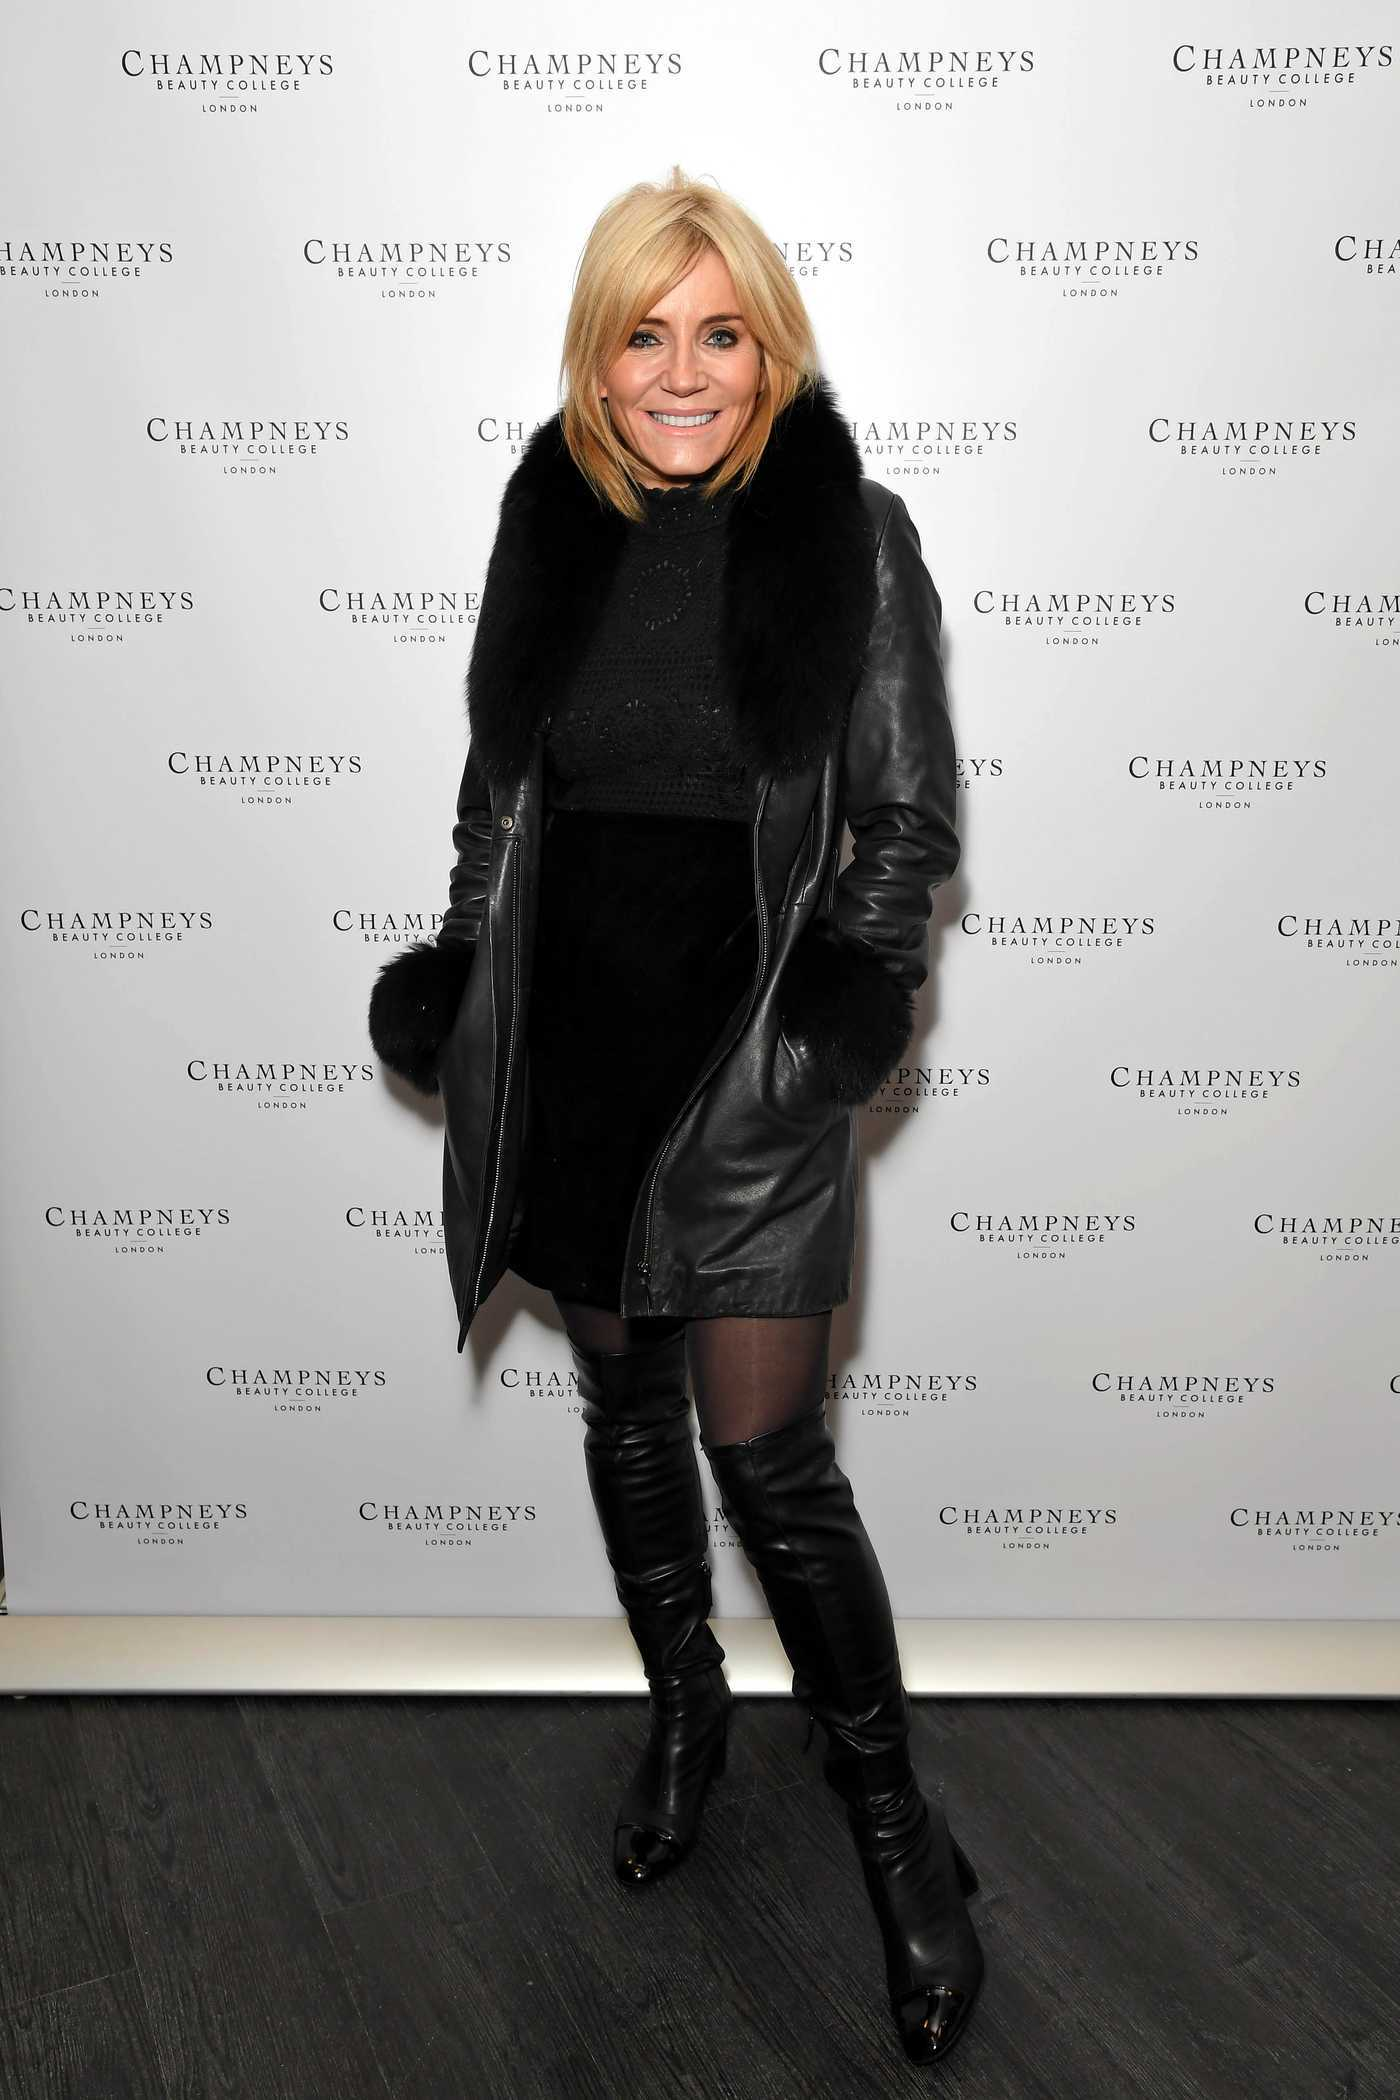 Michelle Collins at the Champneys Beauty College Launch at Holborn Circus in London 11/25/2016